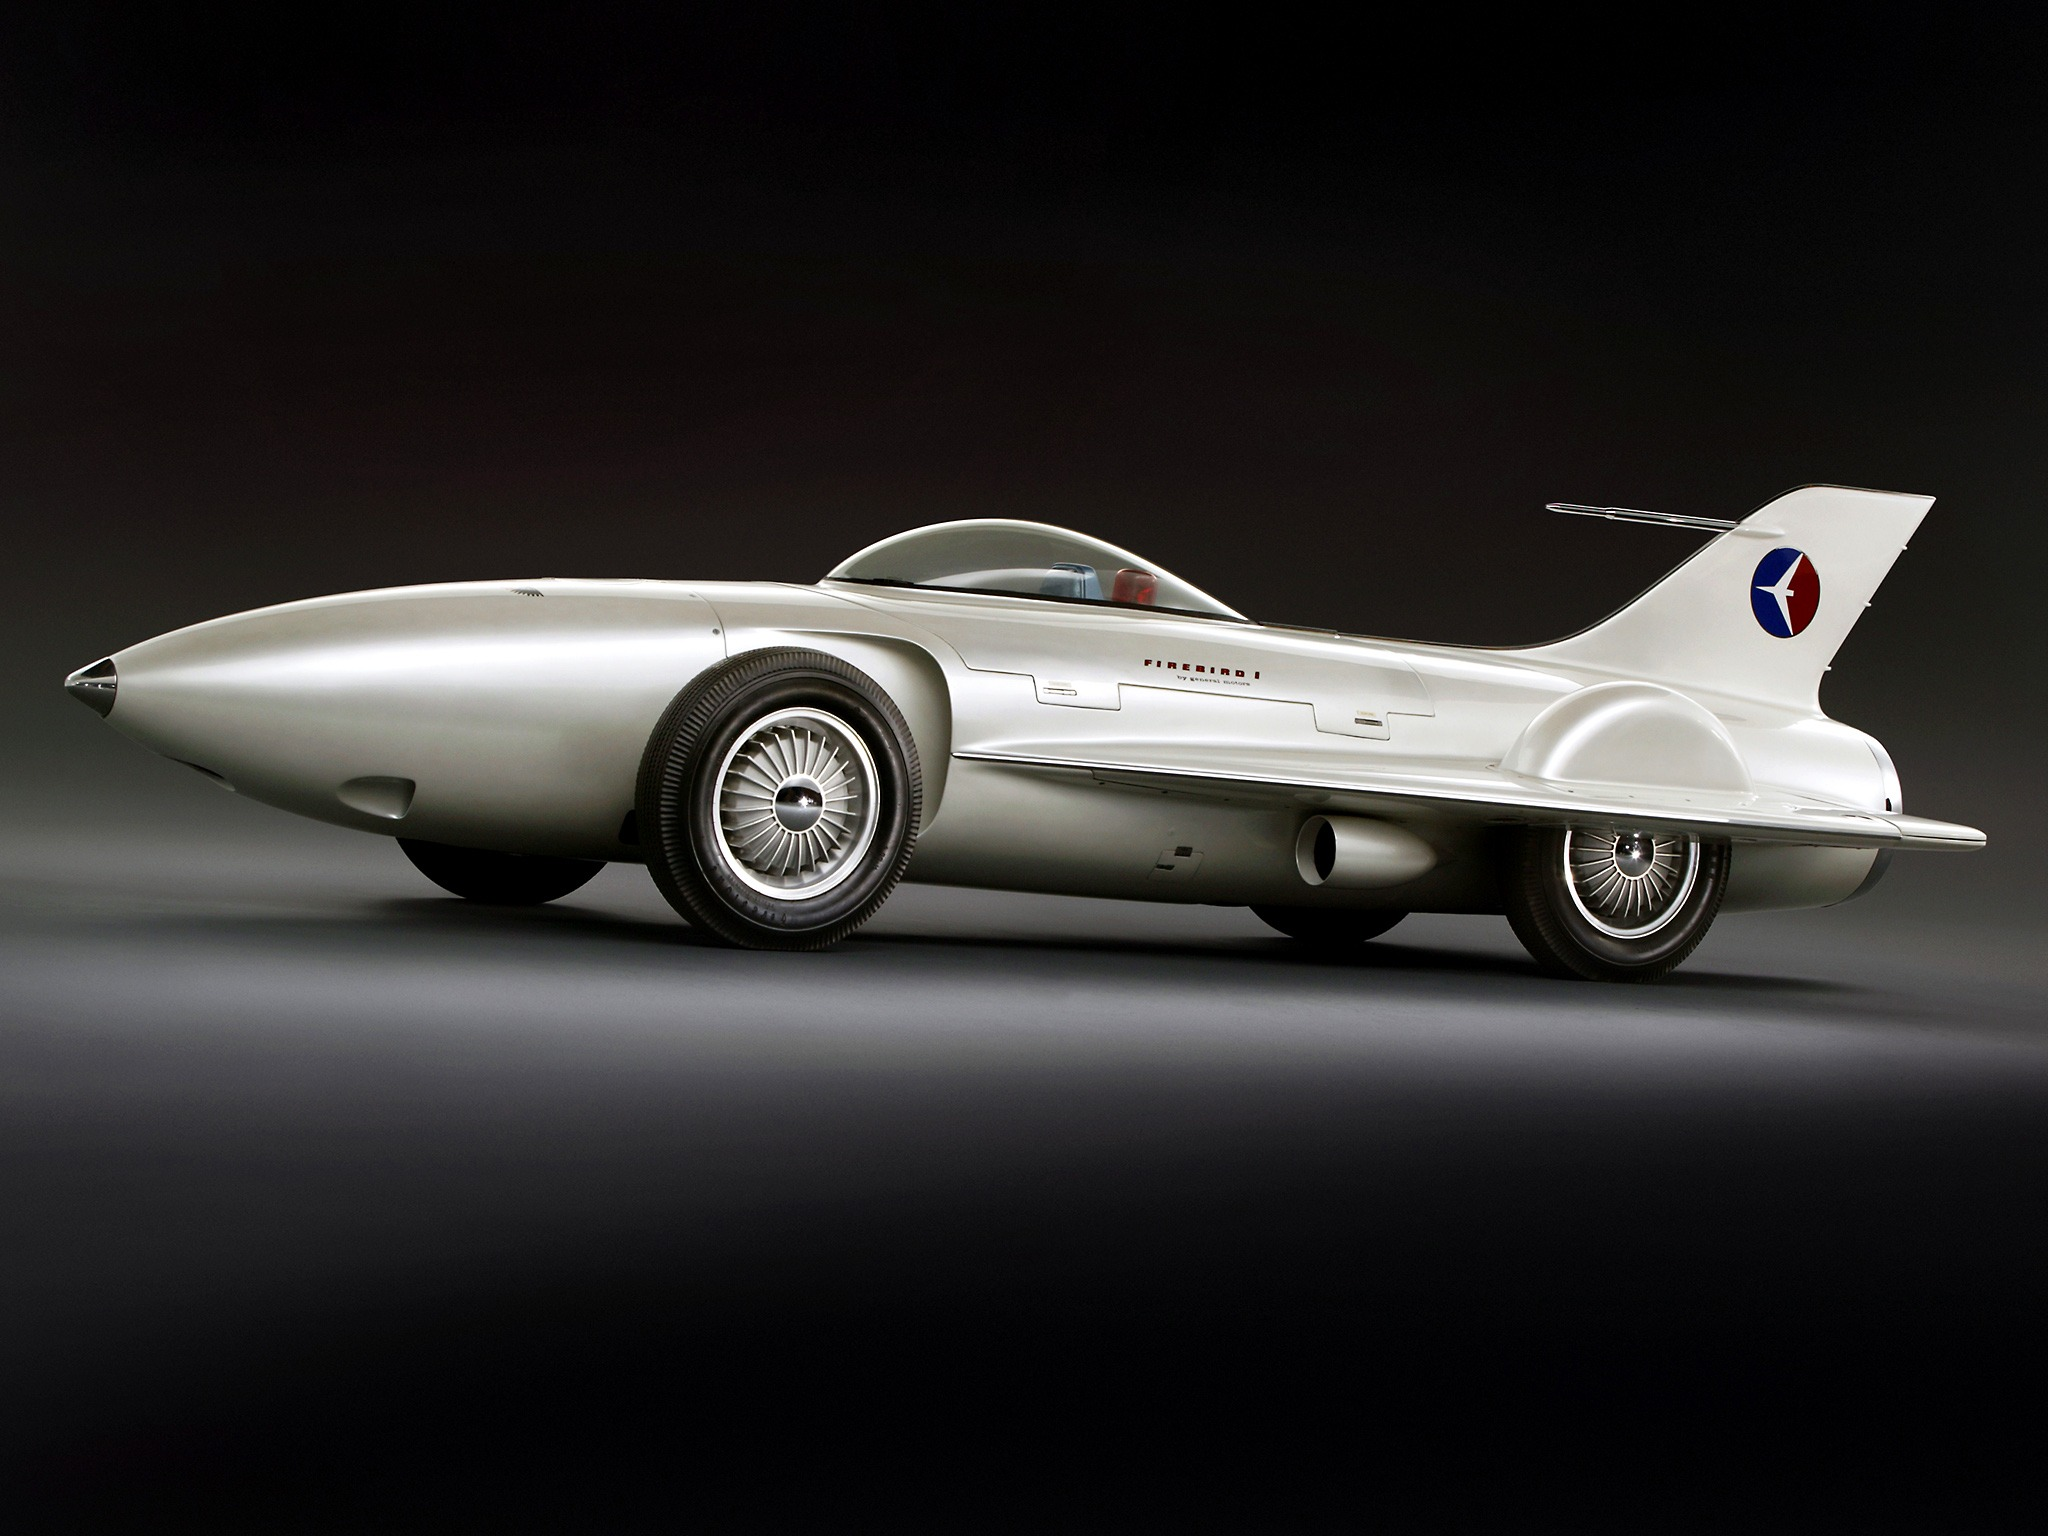 Gm Firebird I Concept Car 1953 Old Concept Cars